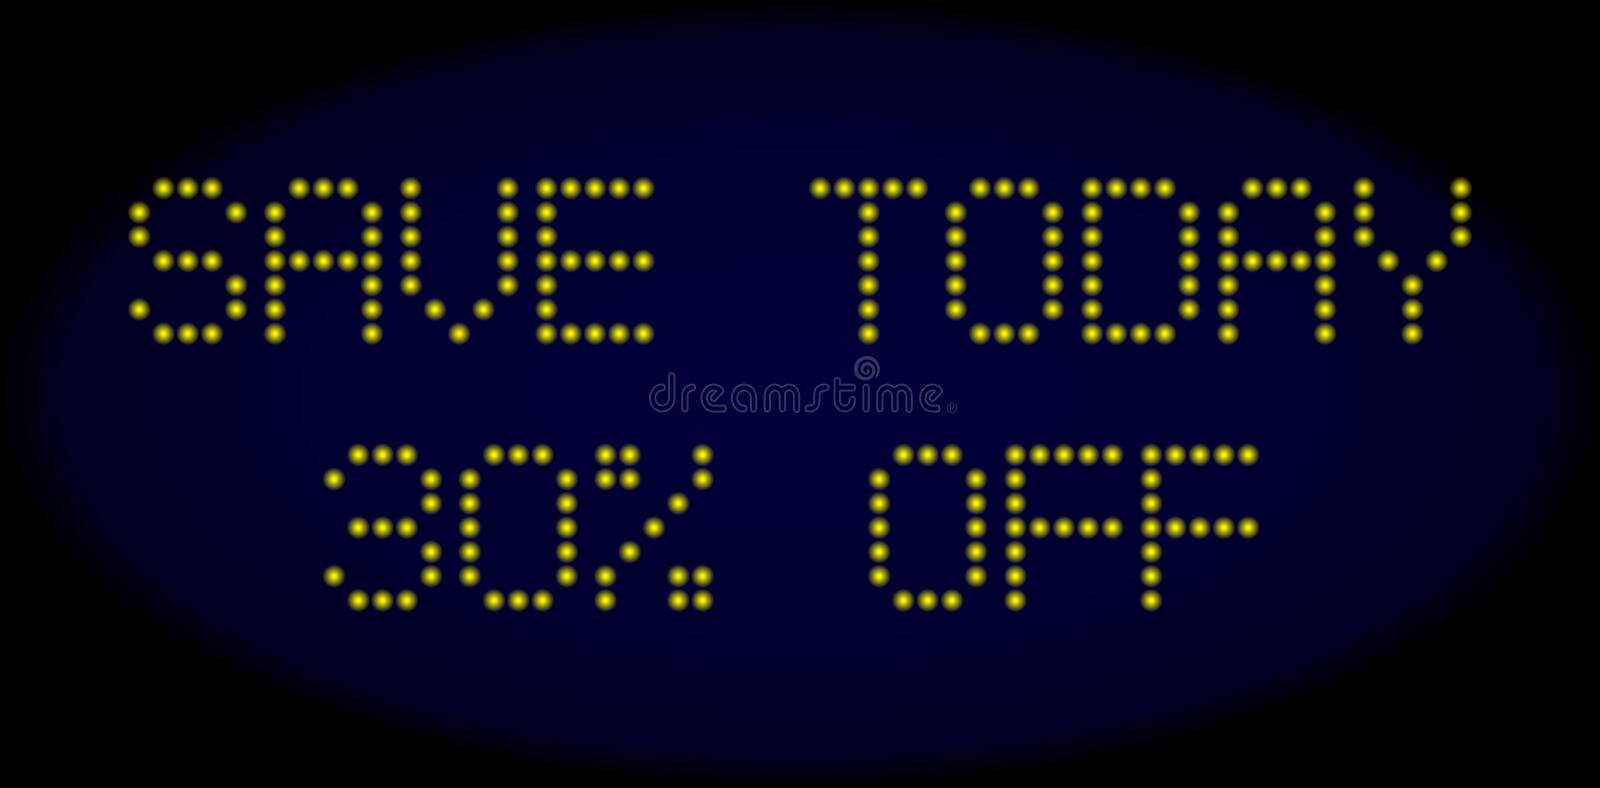 SAVE TODAY 30 Percent OFF Led Style Text with Glowing Dots royalty free illustration